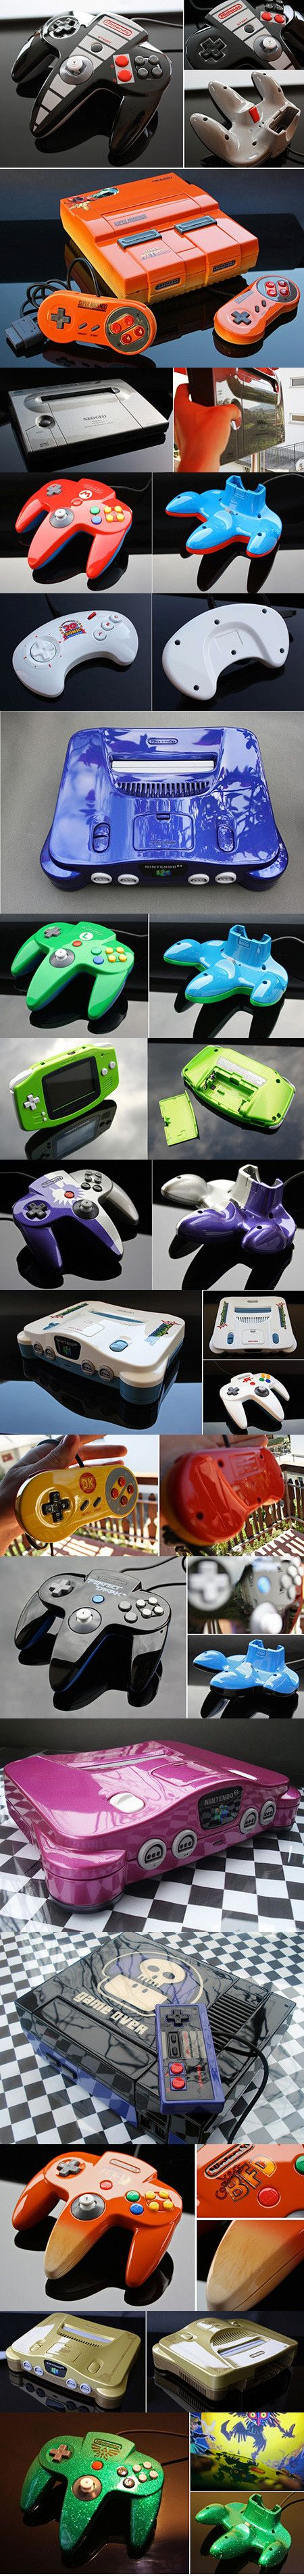 "DeviantArt user Zoki64 breaks away from the boring classic video game console designs by giving them fresh new paint jobs. LOVE the ""game over"" NES system!"